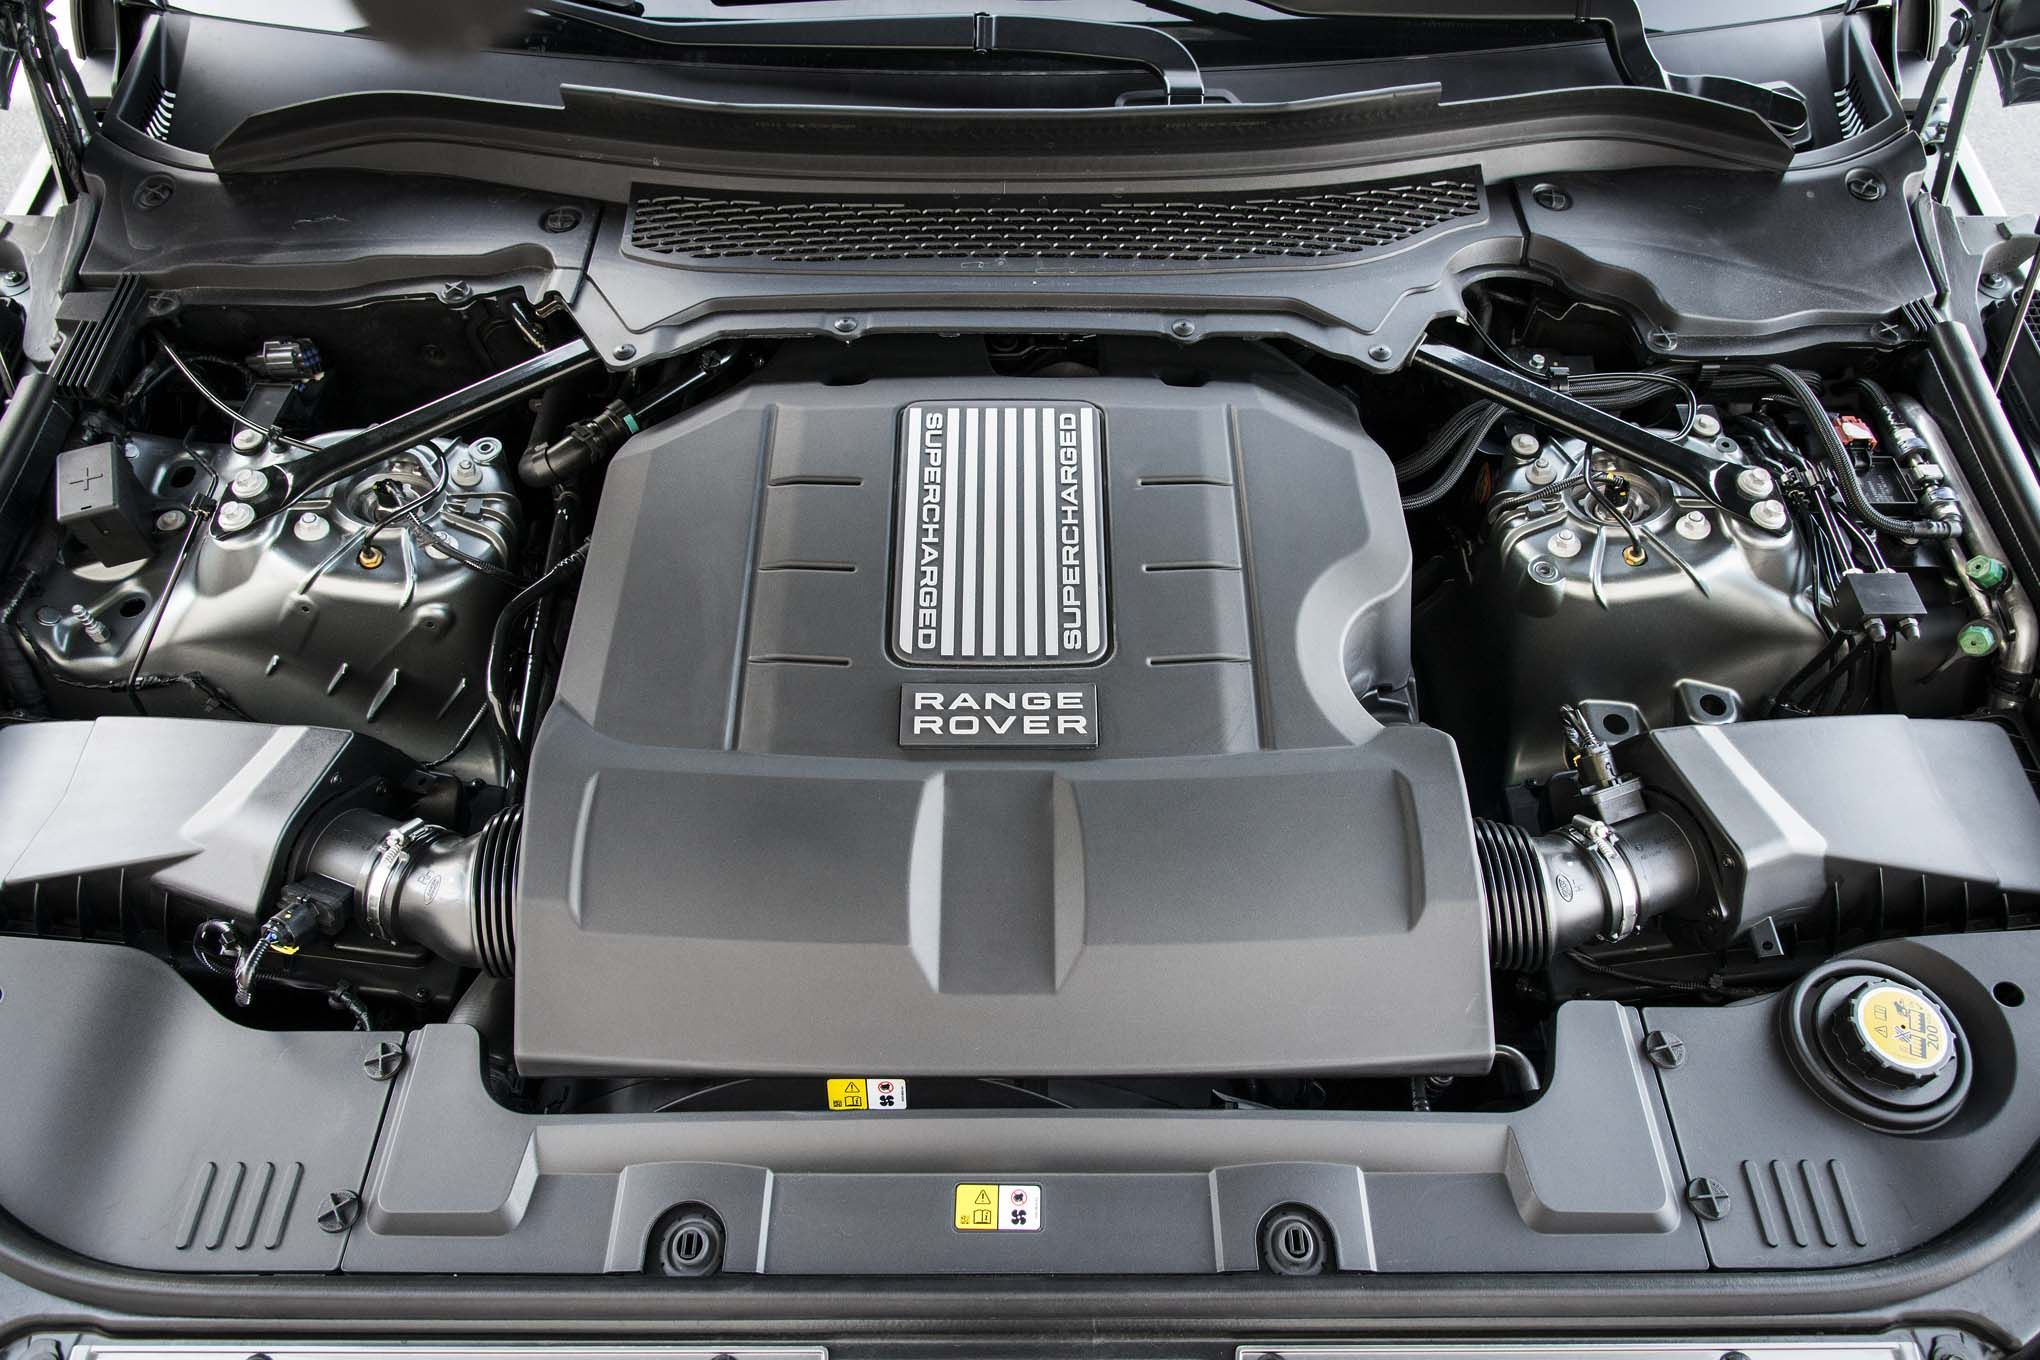 Reliable Range Rover Spare Parts Range Rover Range Rover Car Reliable Cars